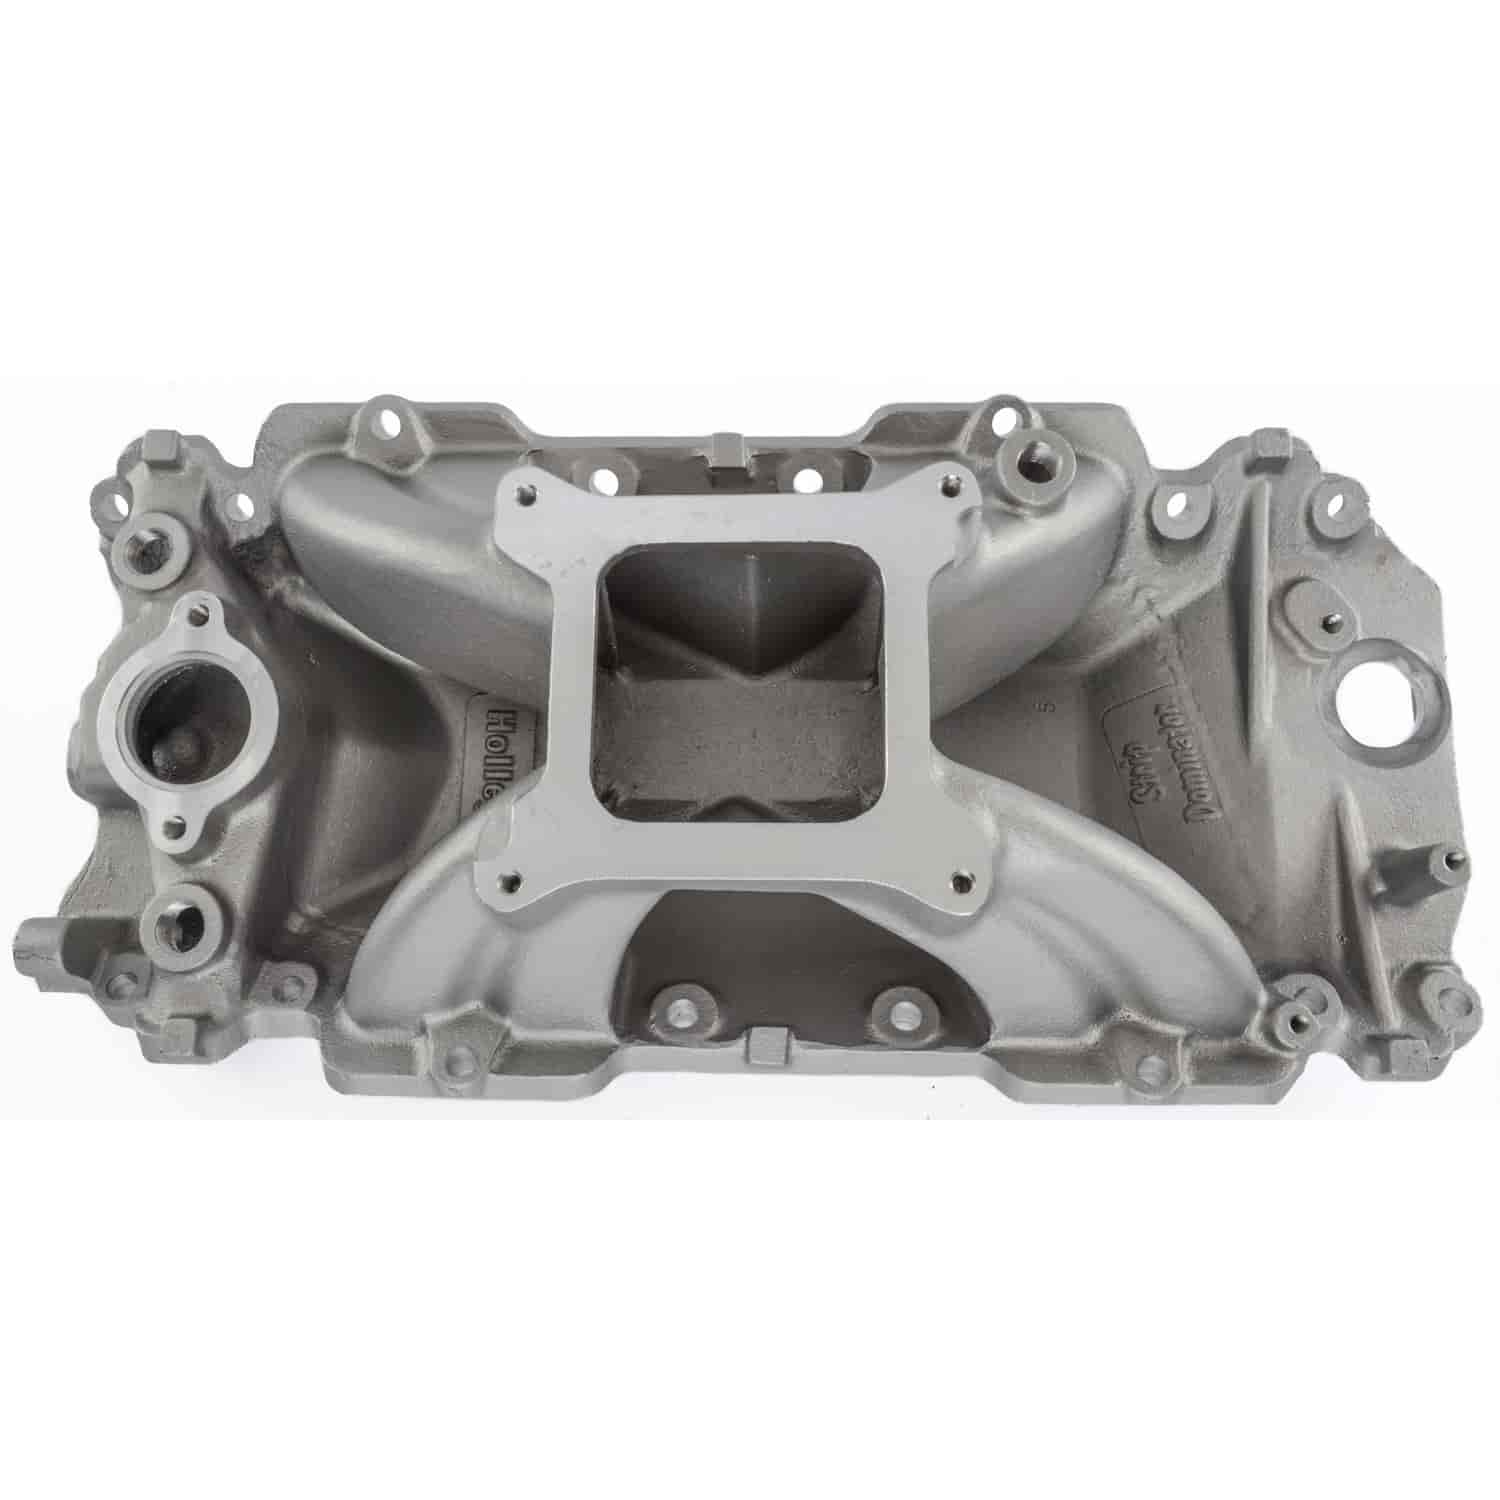 Holley 300-4 - Holley Intake Manifolds